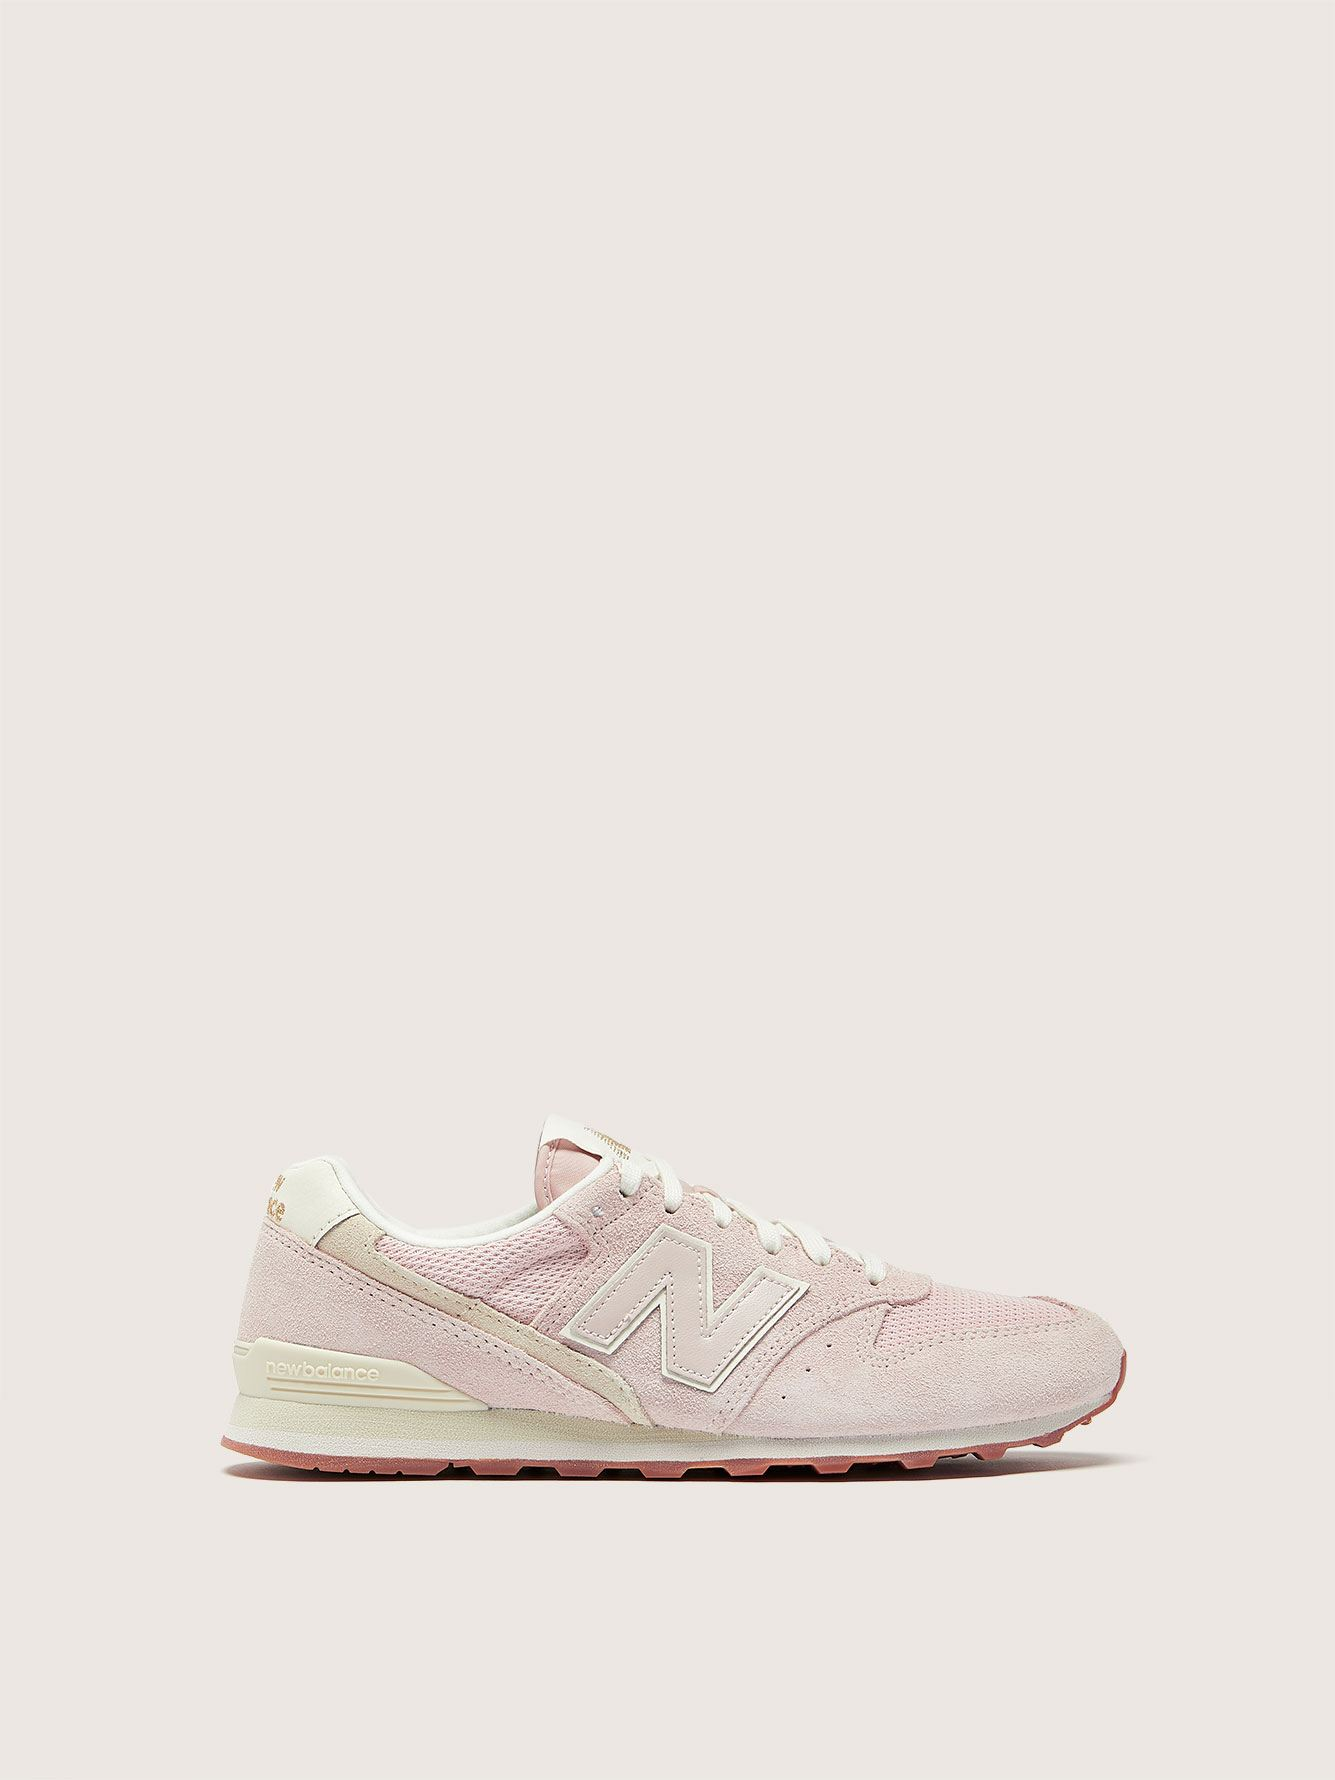 Chaussure sport Lifestyle, pied large - New Balance